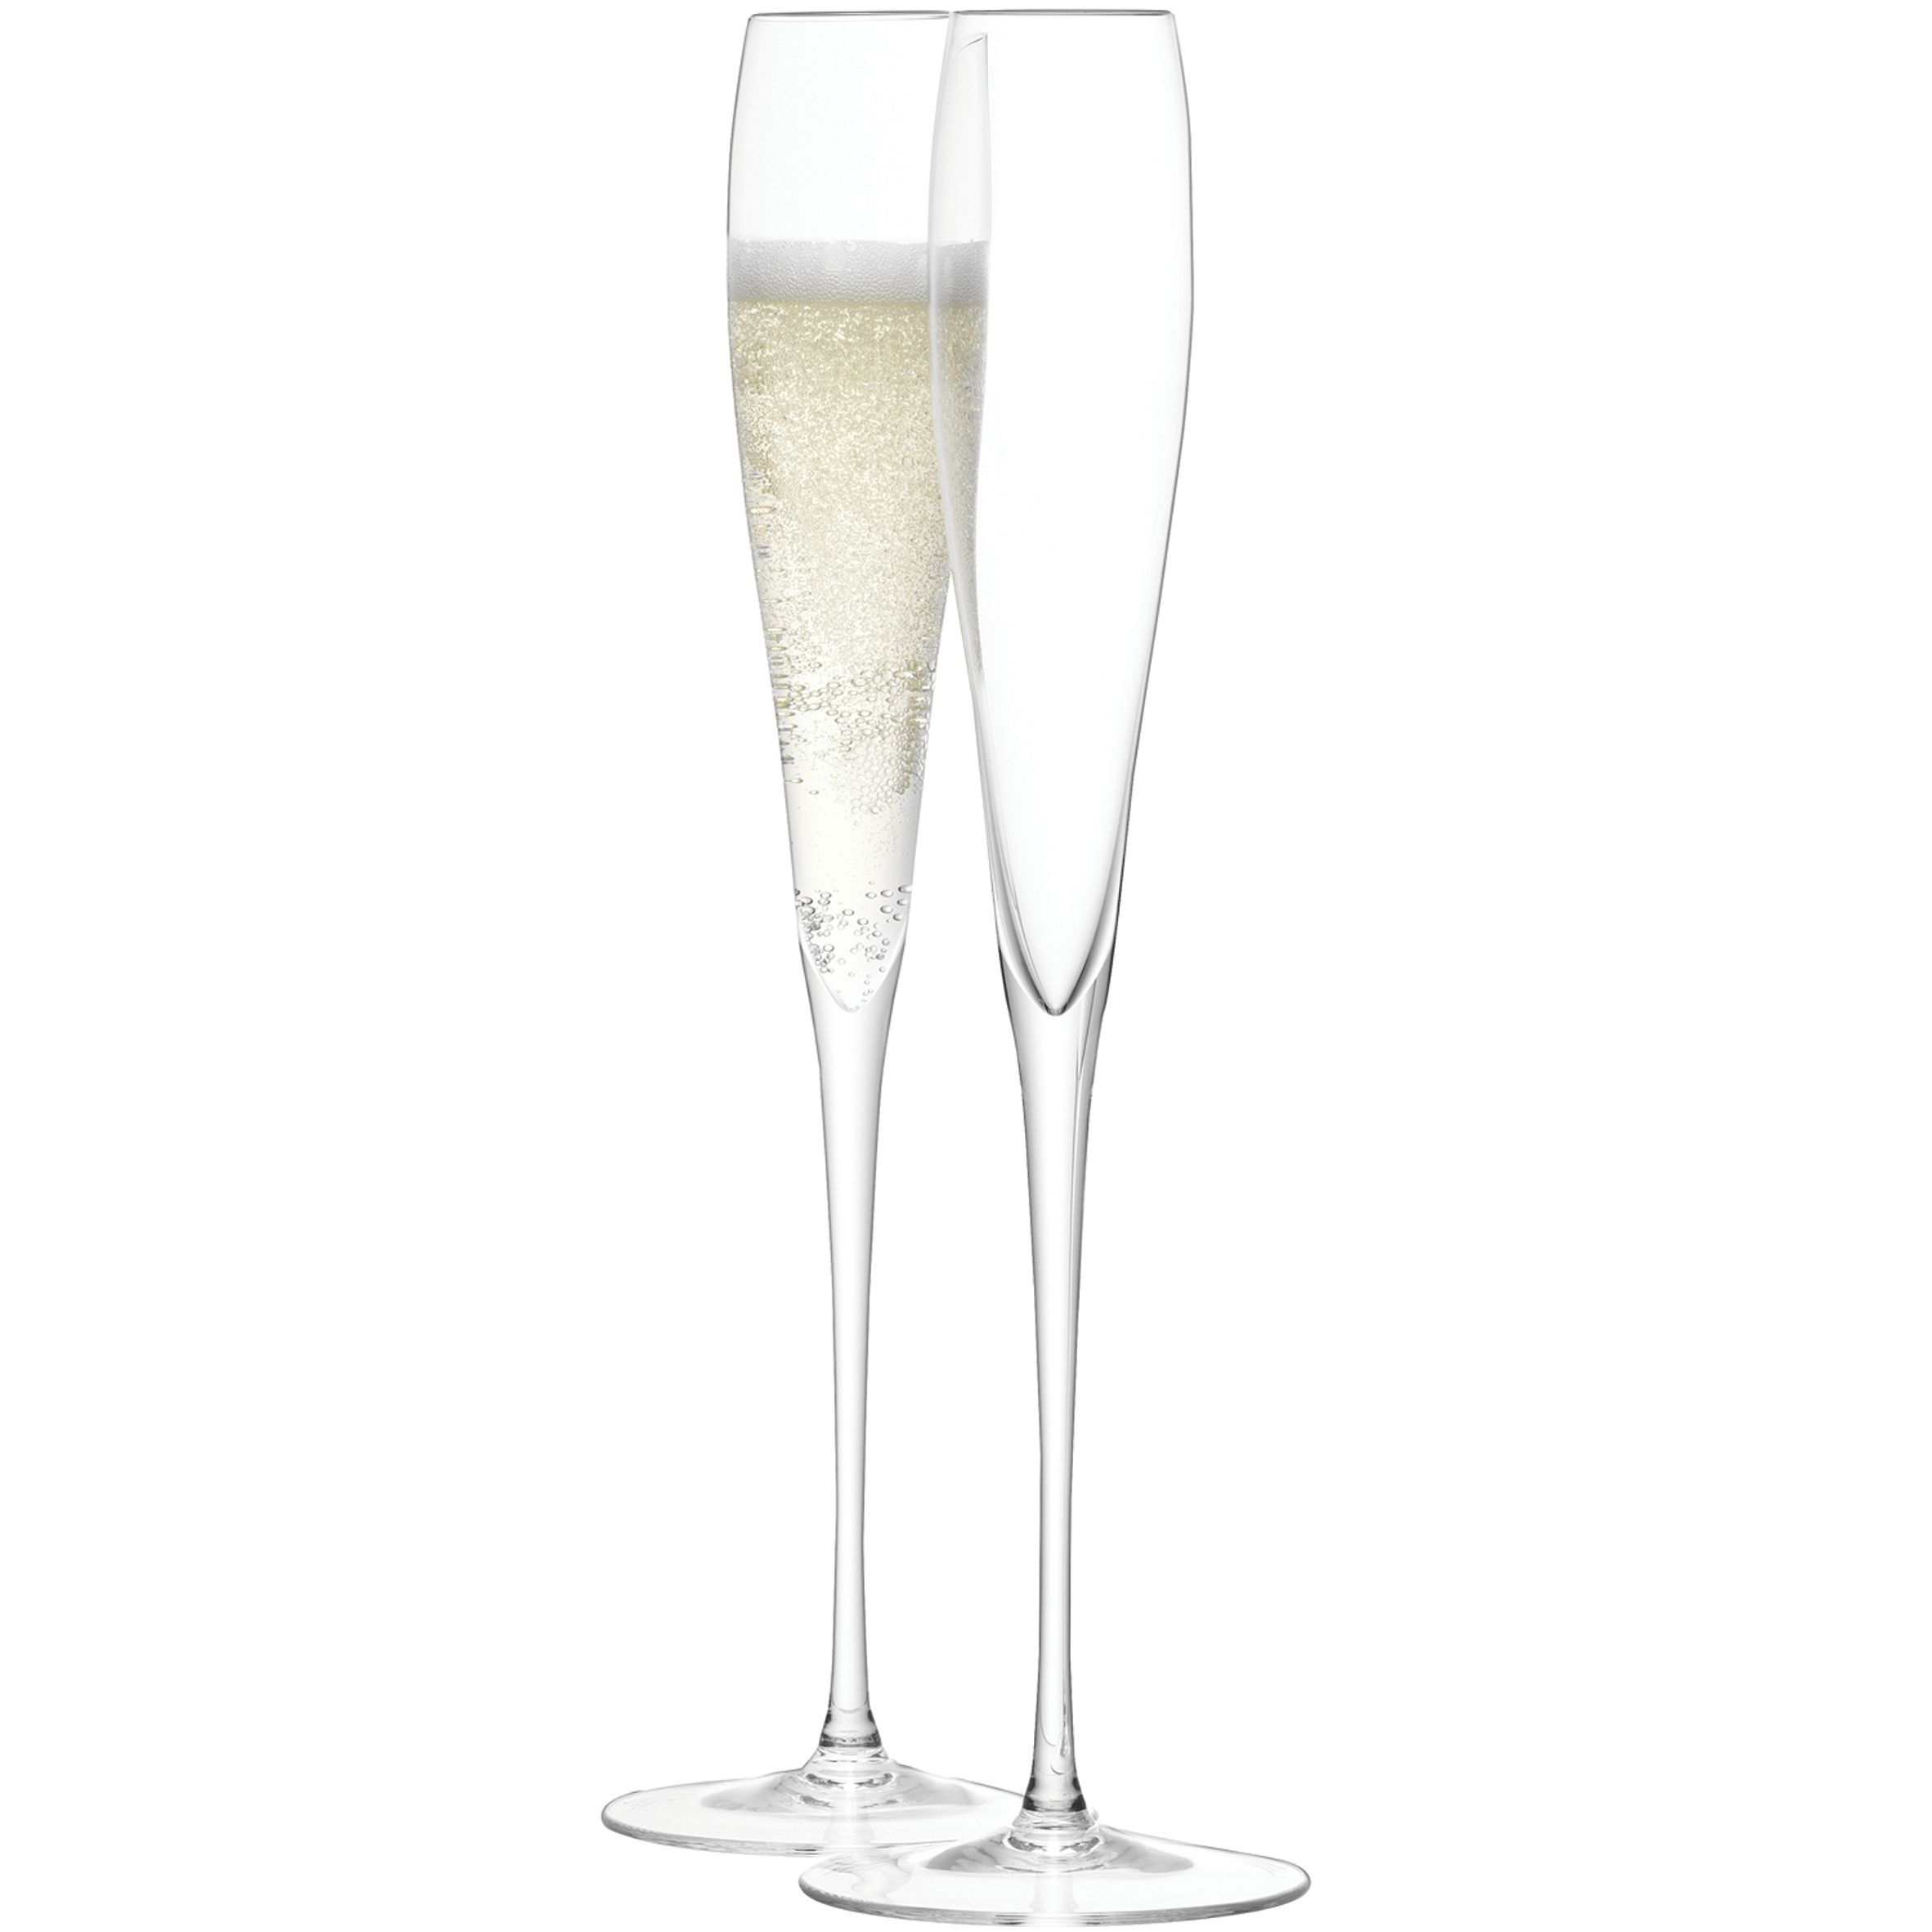 LSA Wine Grand champagne flute clear set of 2